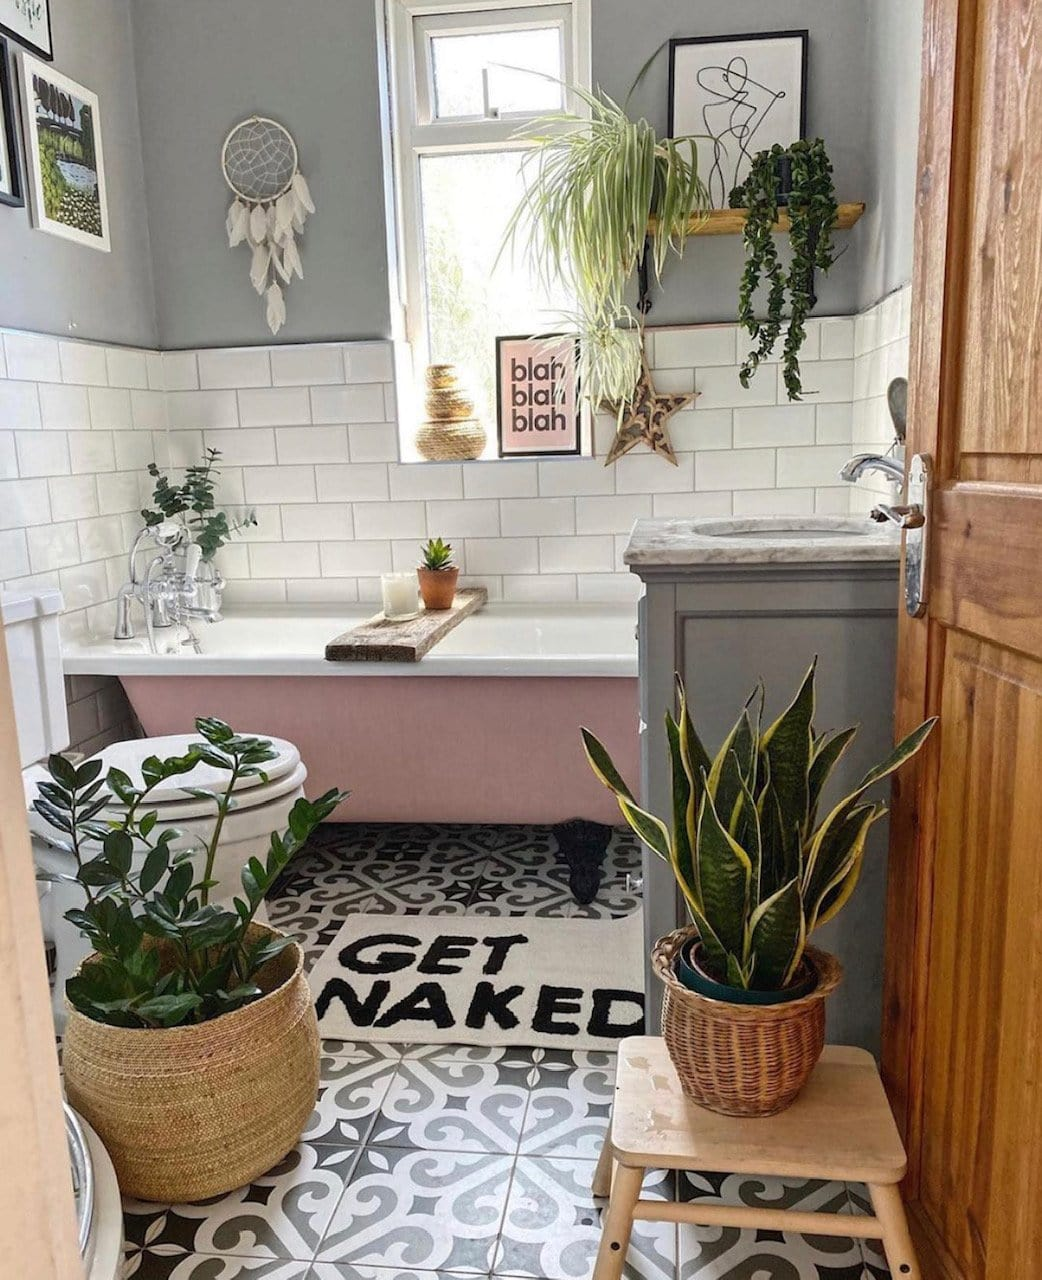 plants, houseplants, palm, biophilic, biophilic design, wellbeing, green, greenery, succulents, green fingers, home decor, interiors, interior design, home inspiration, plant inspiration